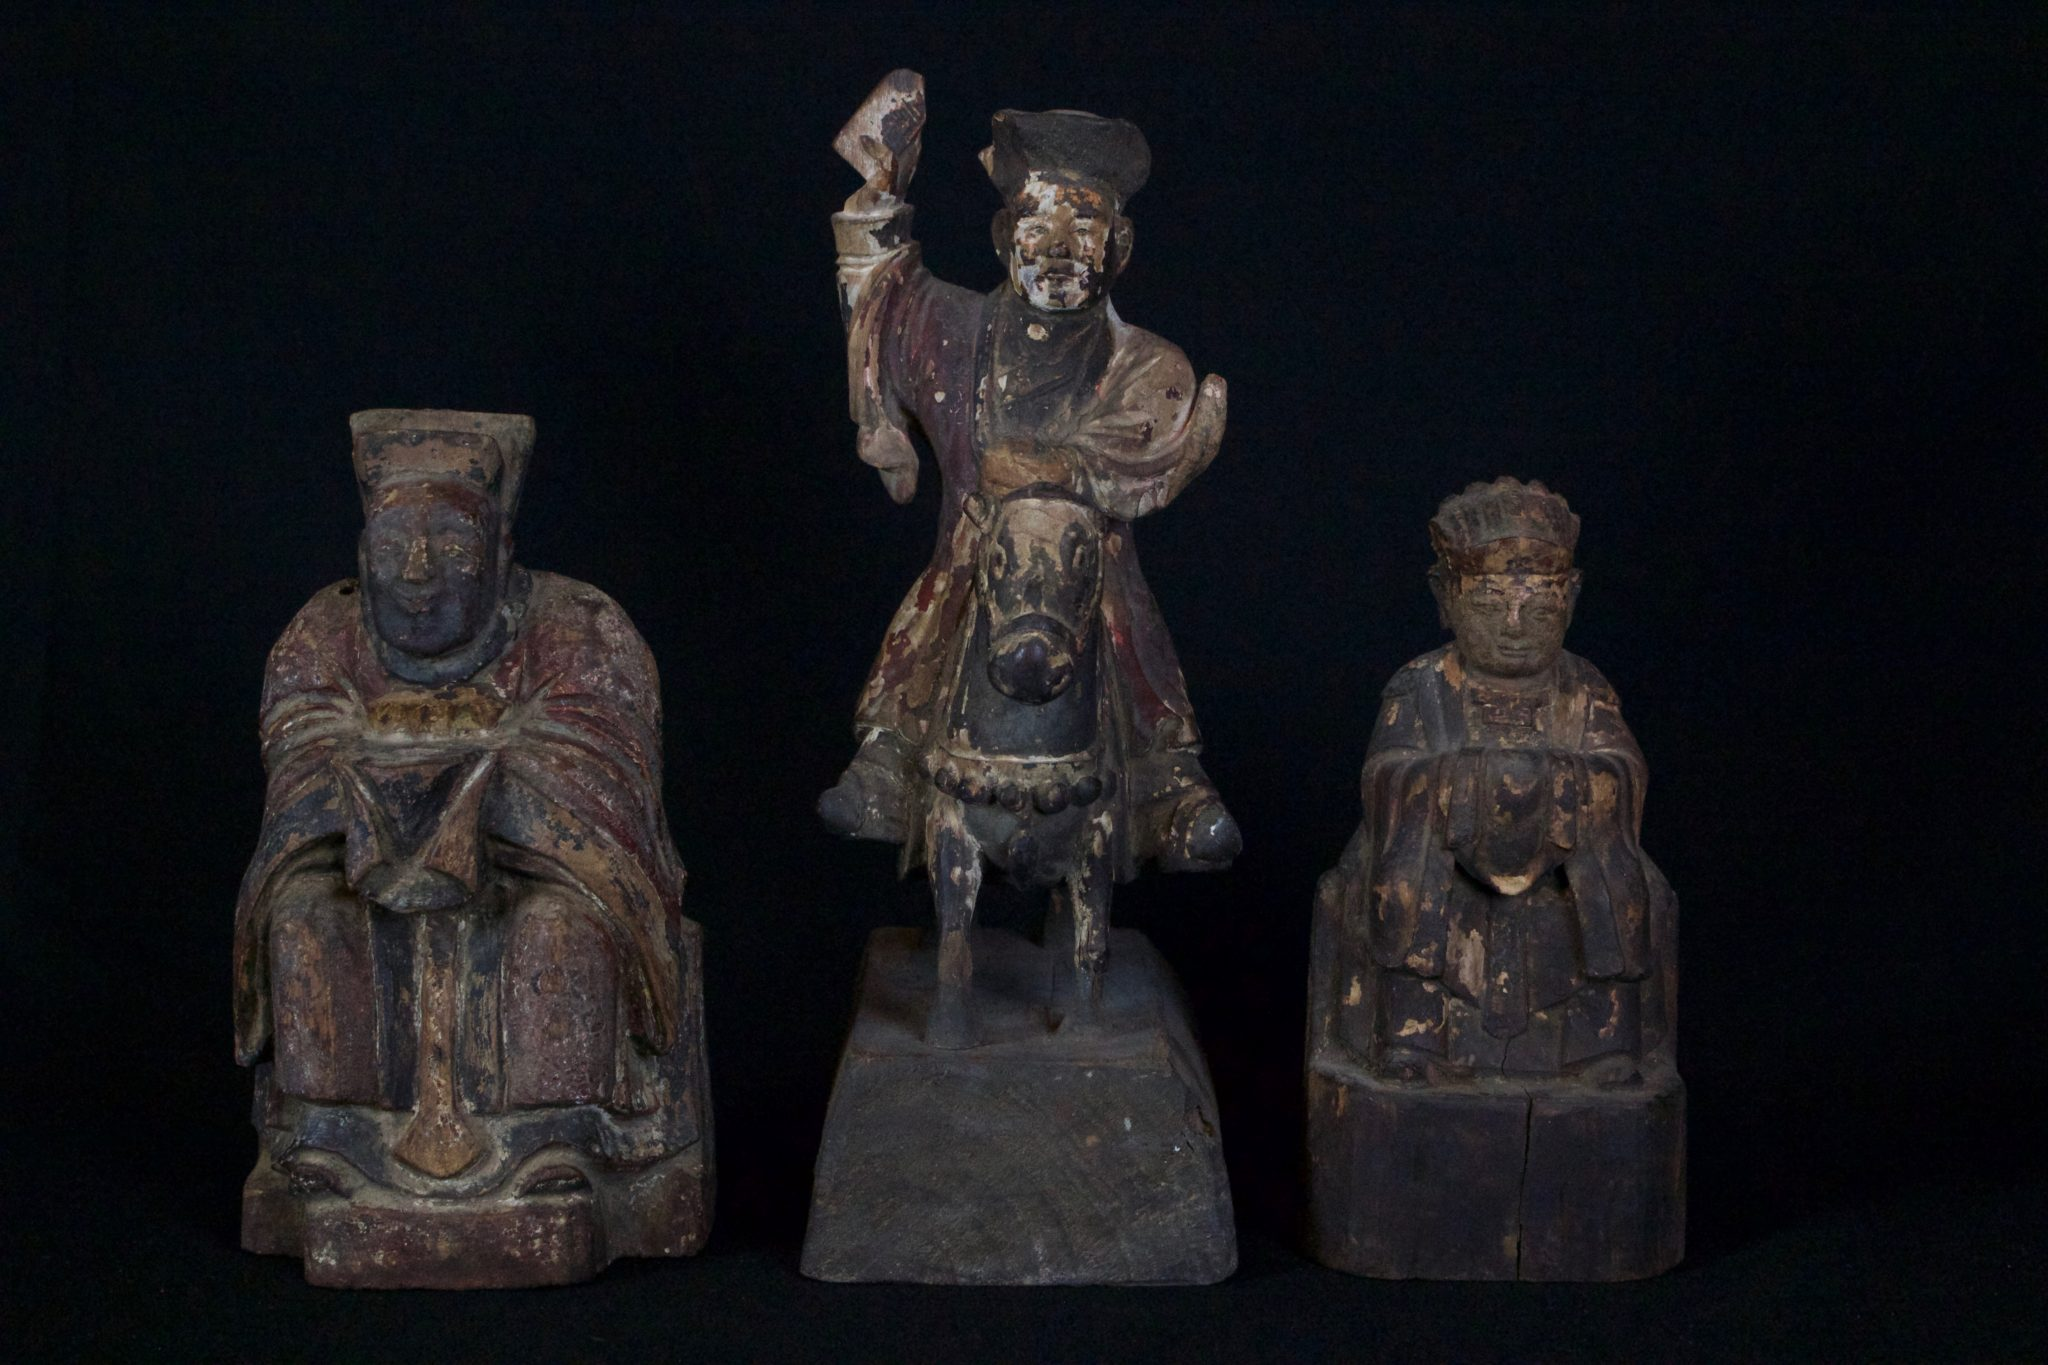 """Zhu Zhong Fan, Shaman Priest Altar Figures, Vietnam, Yao people, Mid to late 19th c, Wood, pigment, Kept in Shaman's home. Part of necessary items to contact spirit world. Every shaman has a set of three called, Zhu Zhong Fan figures. The 3 are: To Sai - ancestor shaman priest figure; Nyut Hung - seated Mandarin or God figure; and Khong Zhao - a protecting officer or messenger to the gods. He is always mounted and brandishing a sword or pennant. They are only sacred when once they are gifted with a soul. A ceremony is performed calling for the deity or ancestor to enter the figure. A piece of silver and some threads are placed in a secret hole in the back and sealed up. This is where the soul resides. When the figure is given away or sold the silver is removed rendering the figure inert and no longer sacred. (left - 'Nyut Hung' figure, 8"""" x 4 ¼"""" x 2 ½"""", $650); (middle - 'Khong Zhao' figure, 11"""" x 4"""" x 6 ¾"""", $900.); (right - 'To Sai' figure,7"""" x 3 ¼"""" x 2 ½"""", $650)"""